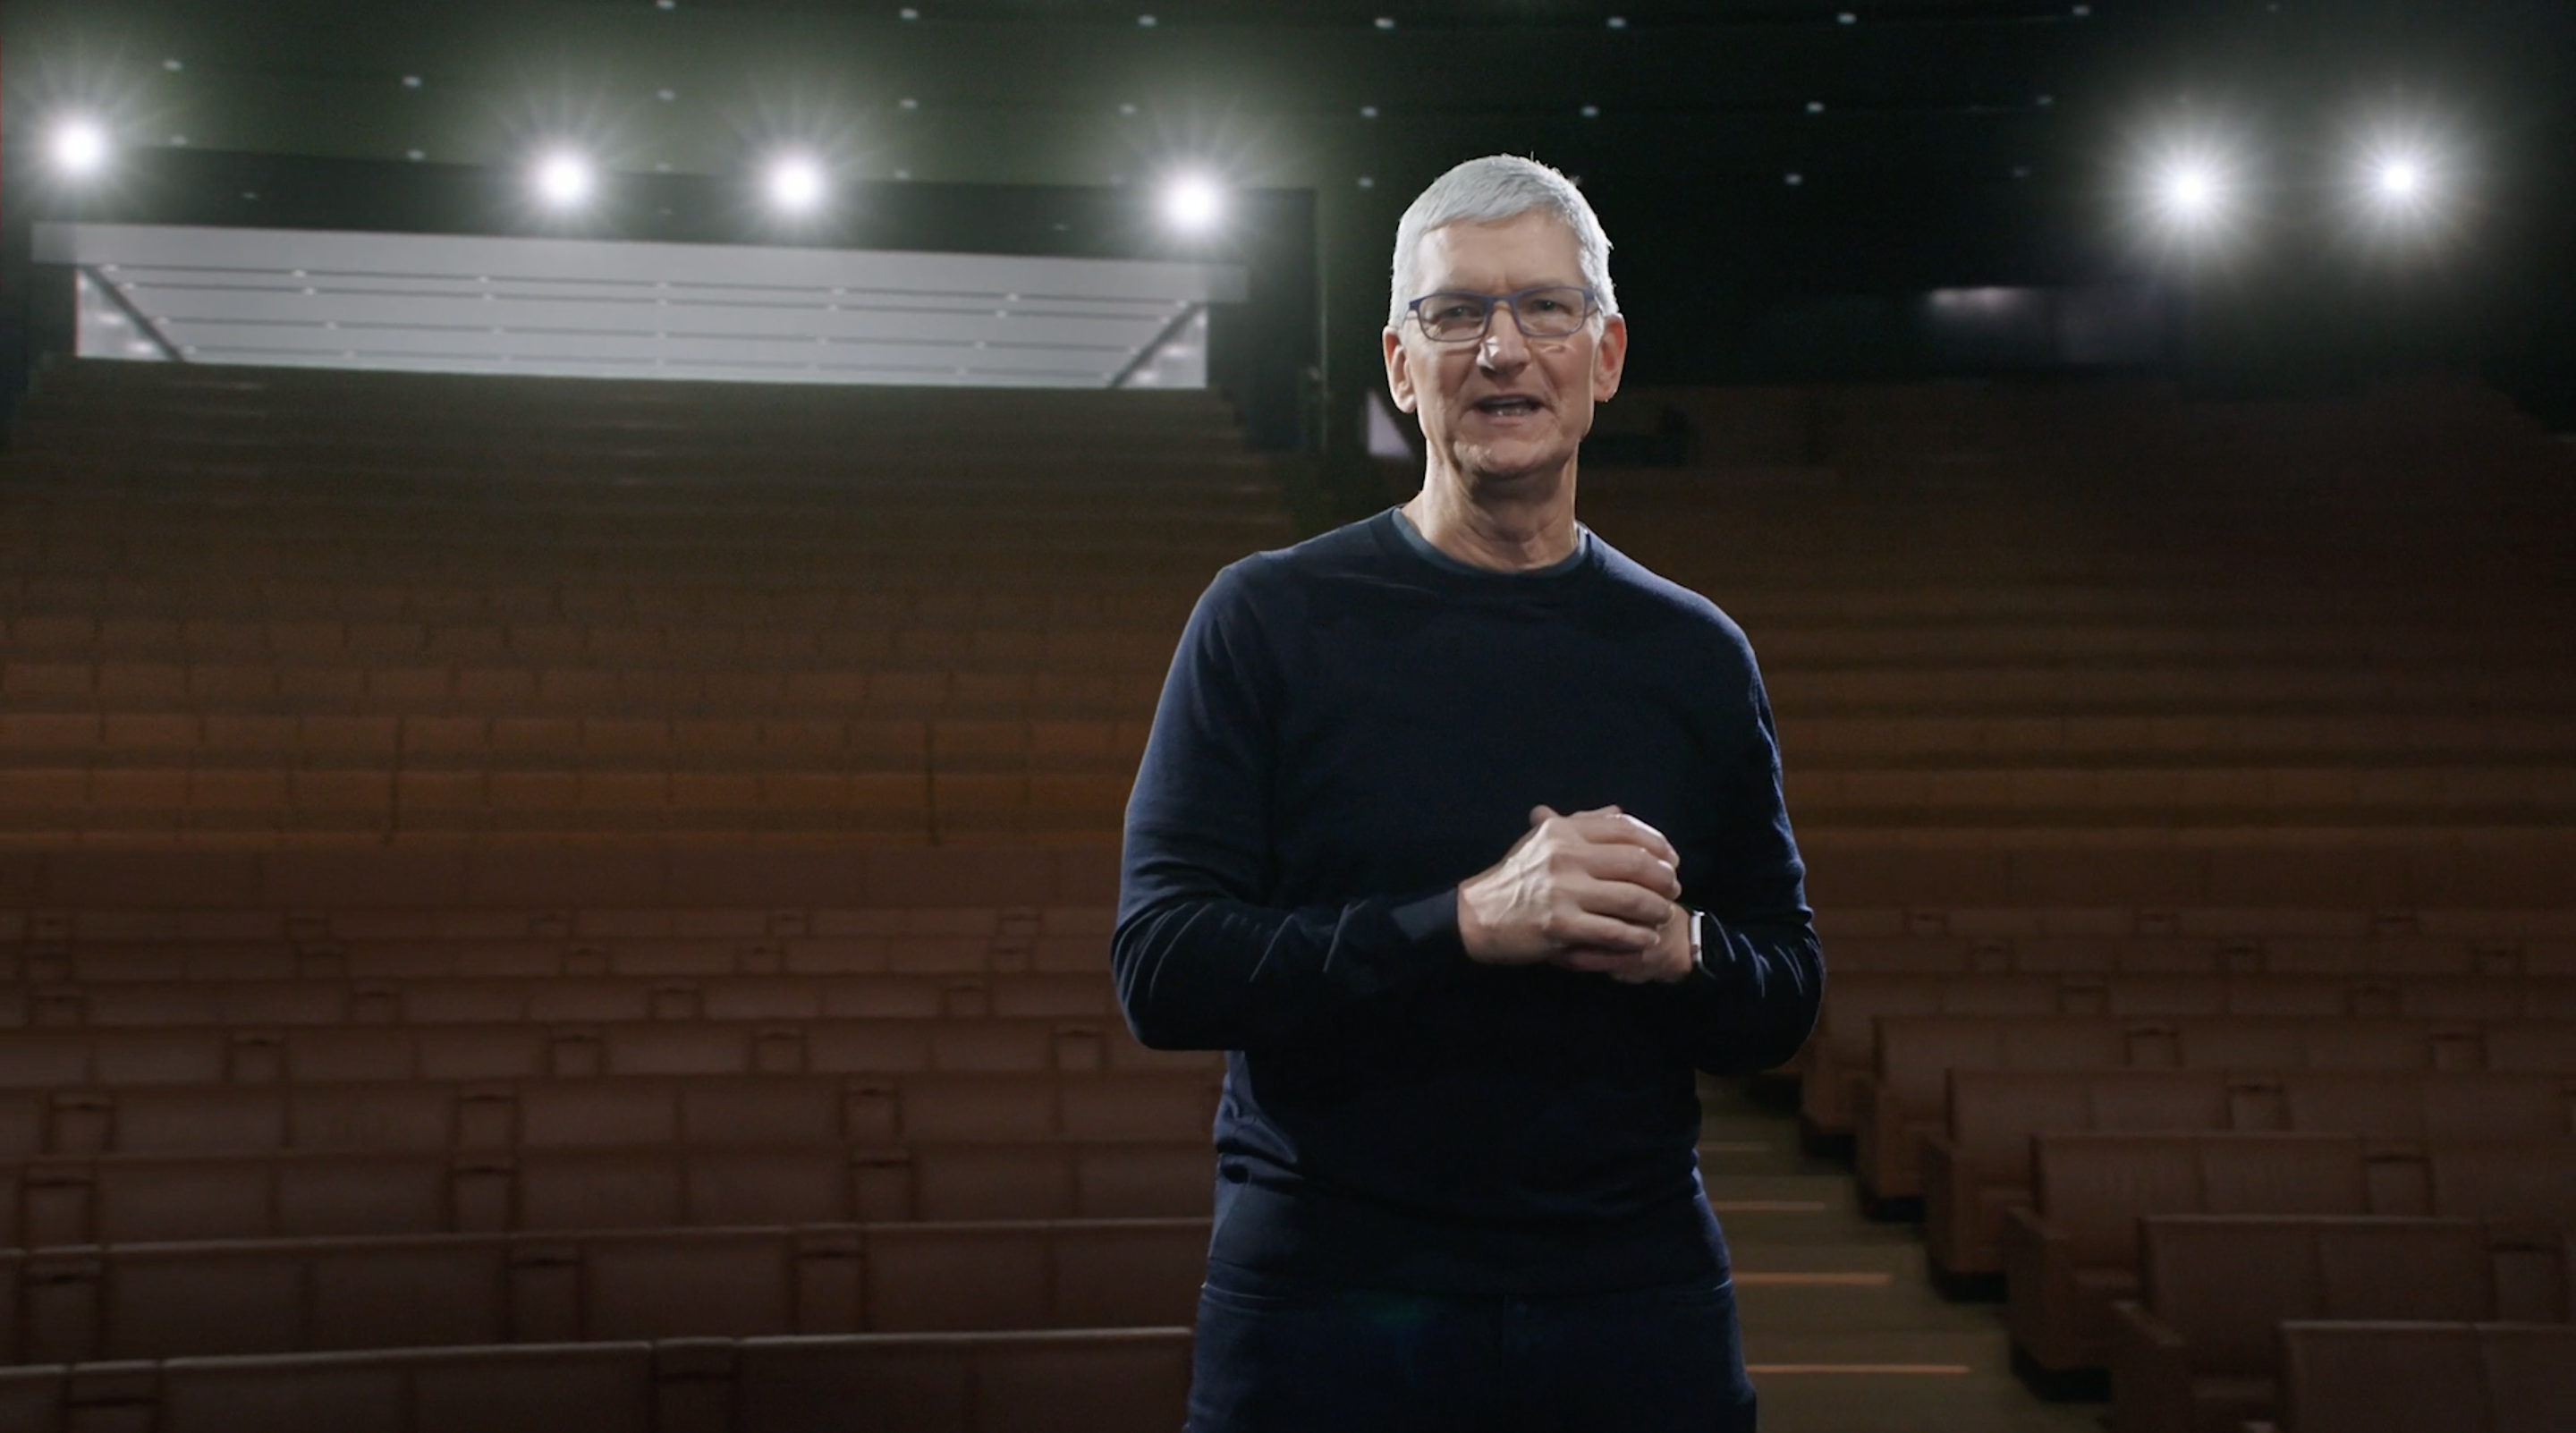 Tim Cook Steve Jobs Theater light camera action Apple Park